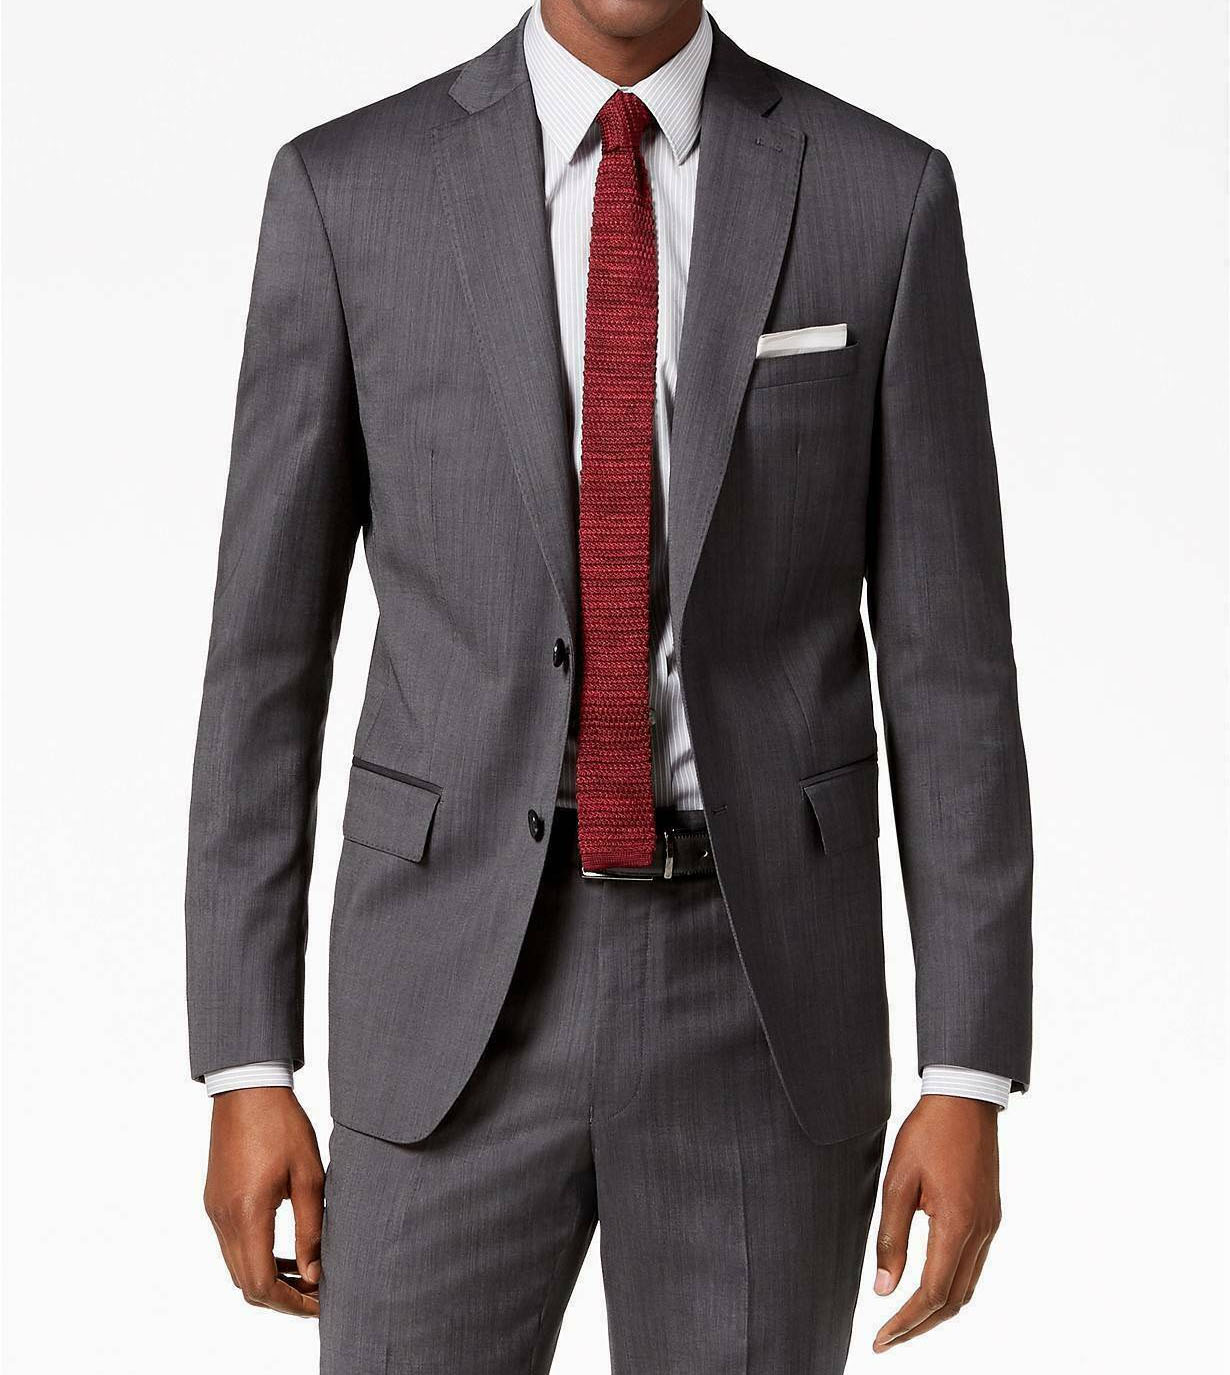 Men/'s Wool Cashmere Sharkskin Suit Giorgio Cosani Two Button 901 Gray Modern fit